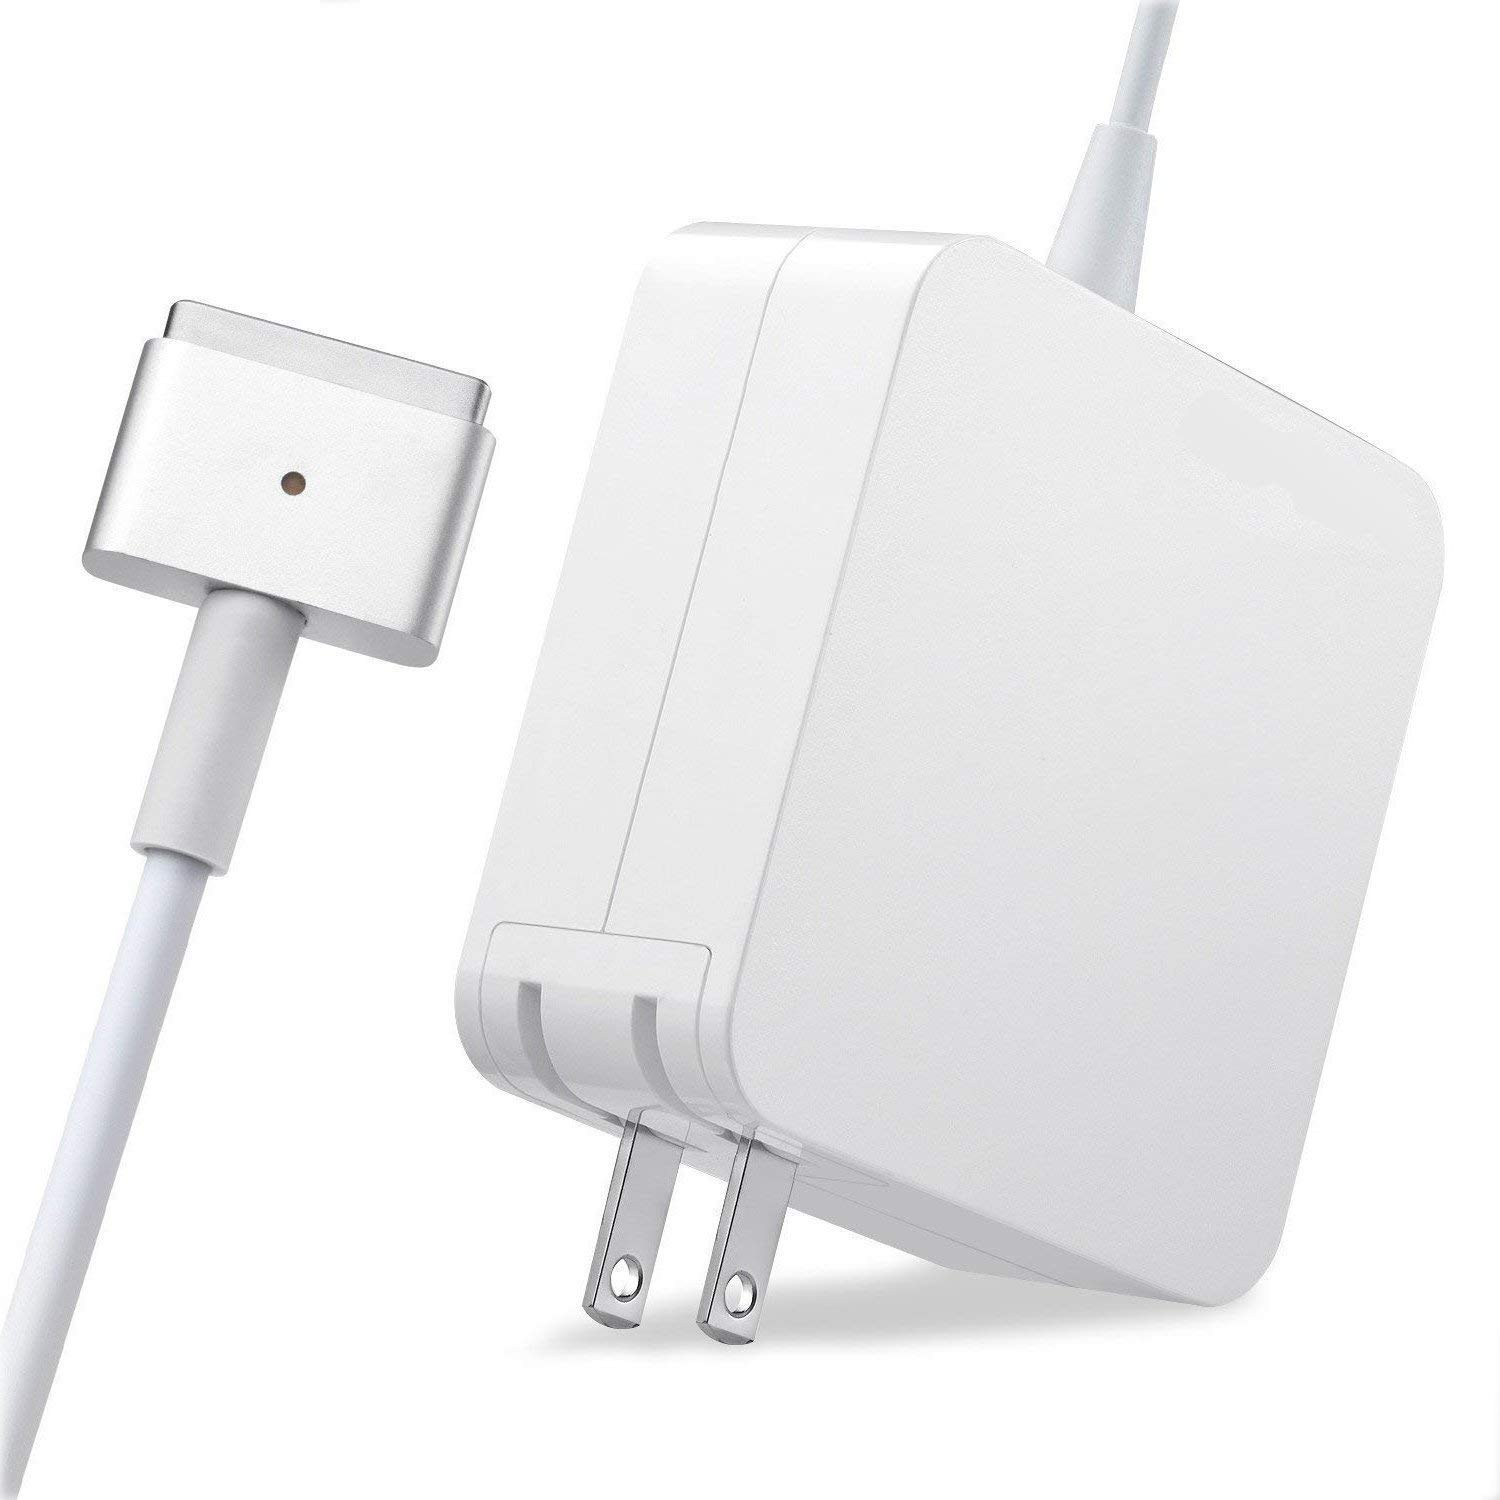 GSNOW Mac Book Pro Charger, AC 85W Magsafe 2 Power Adapter for MacBook Pro 17/15/13 inch (Made After Mid 2012) by GSNOW